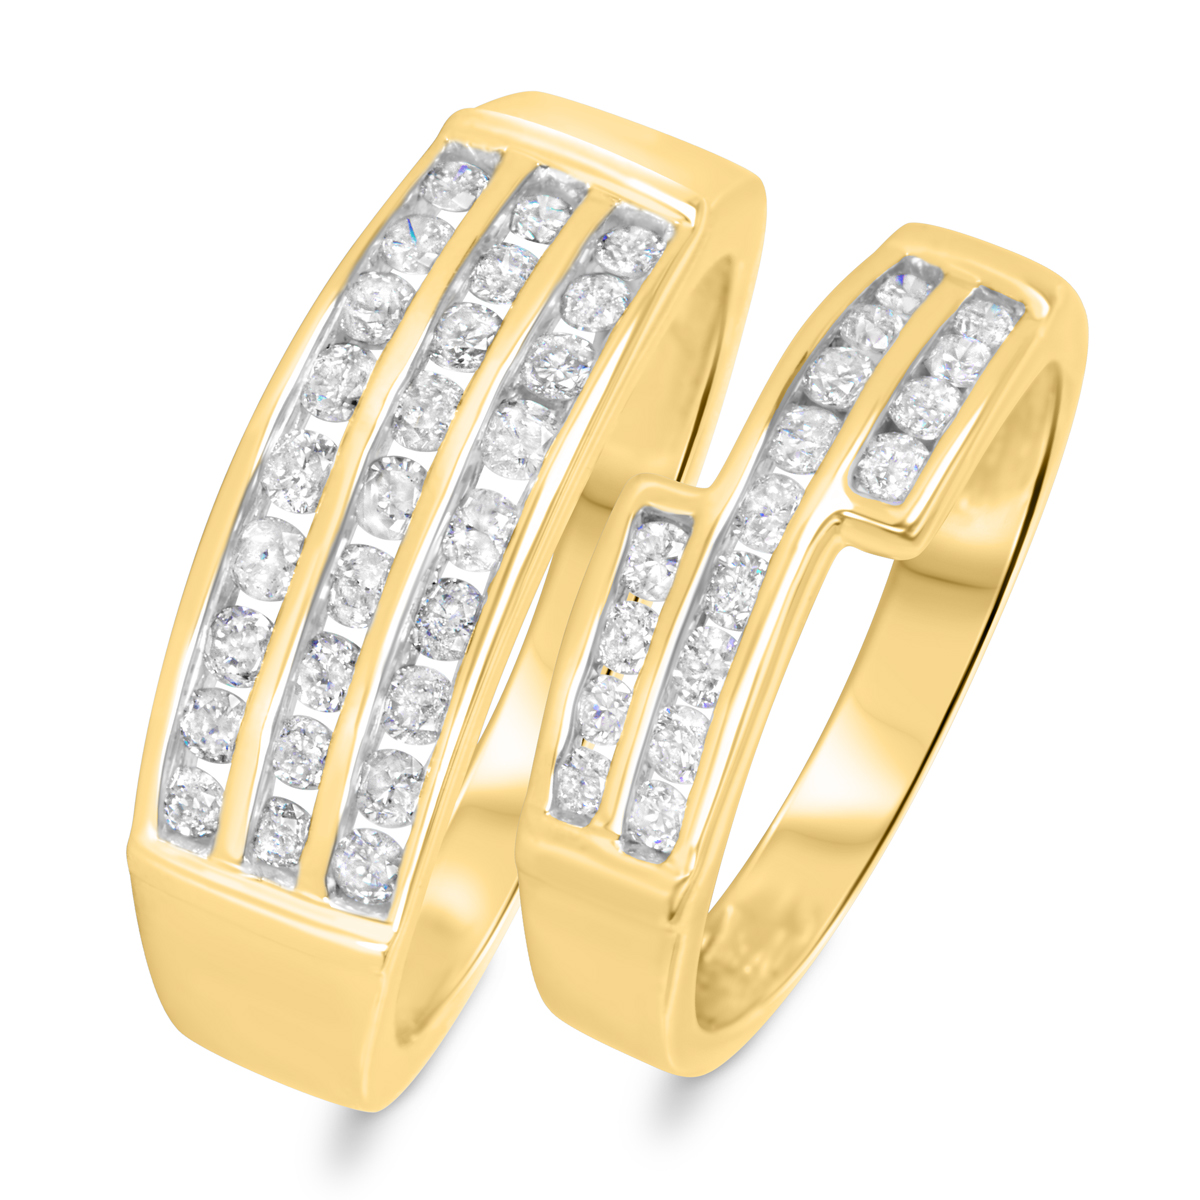 1 1/8 CT. T.W. Diamond His And Hers Wedding Band Set 14K Yellow Gold